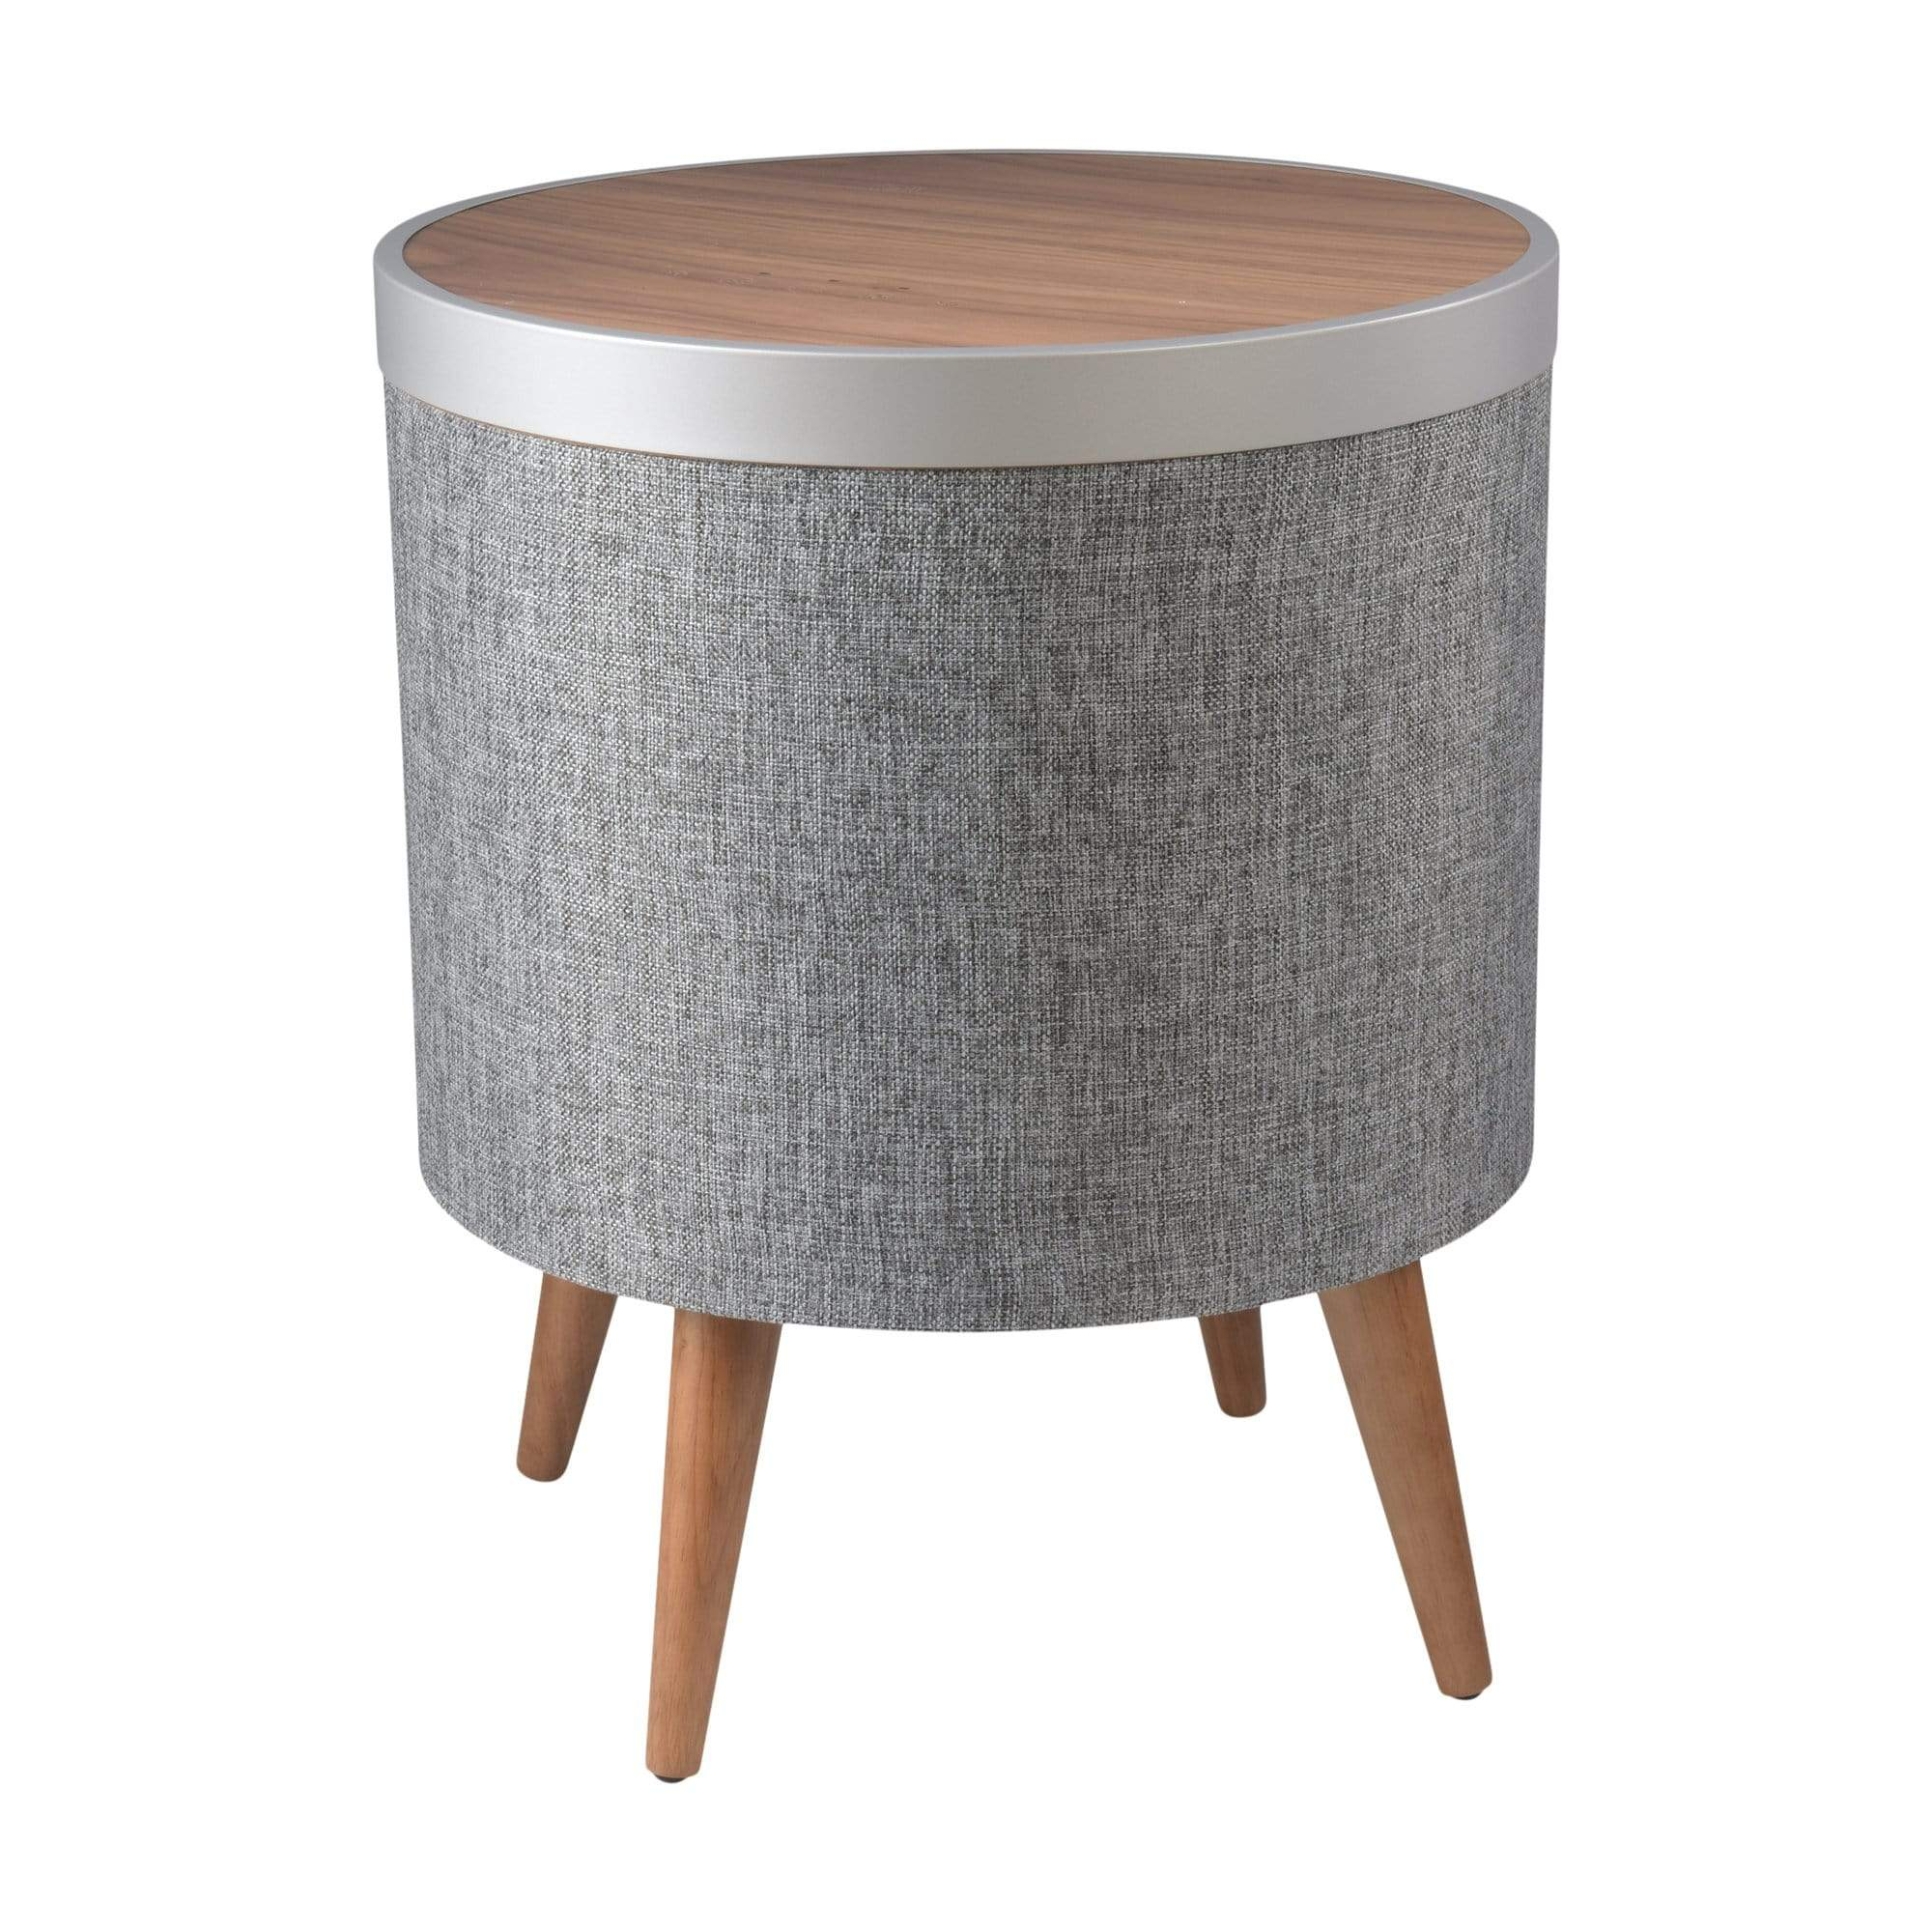 Zain Height-Adjustable Smart Side Table